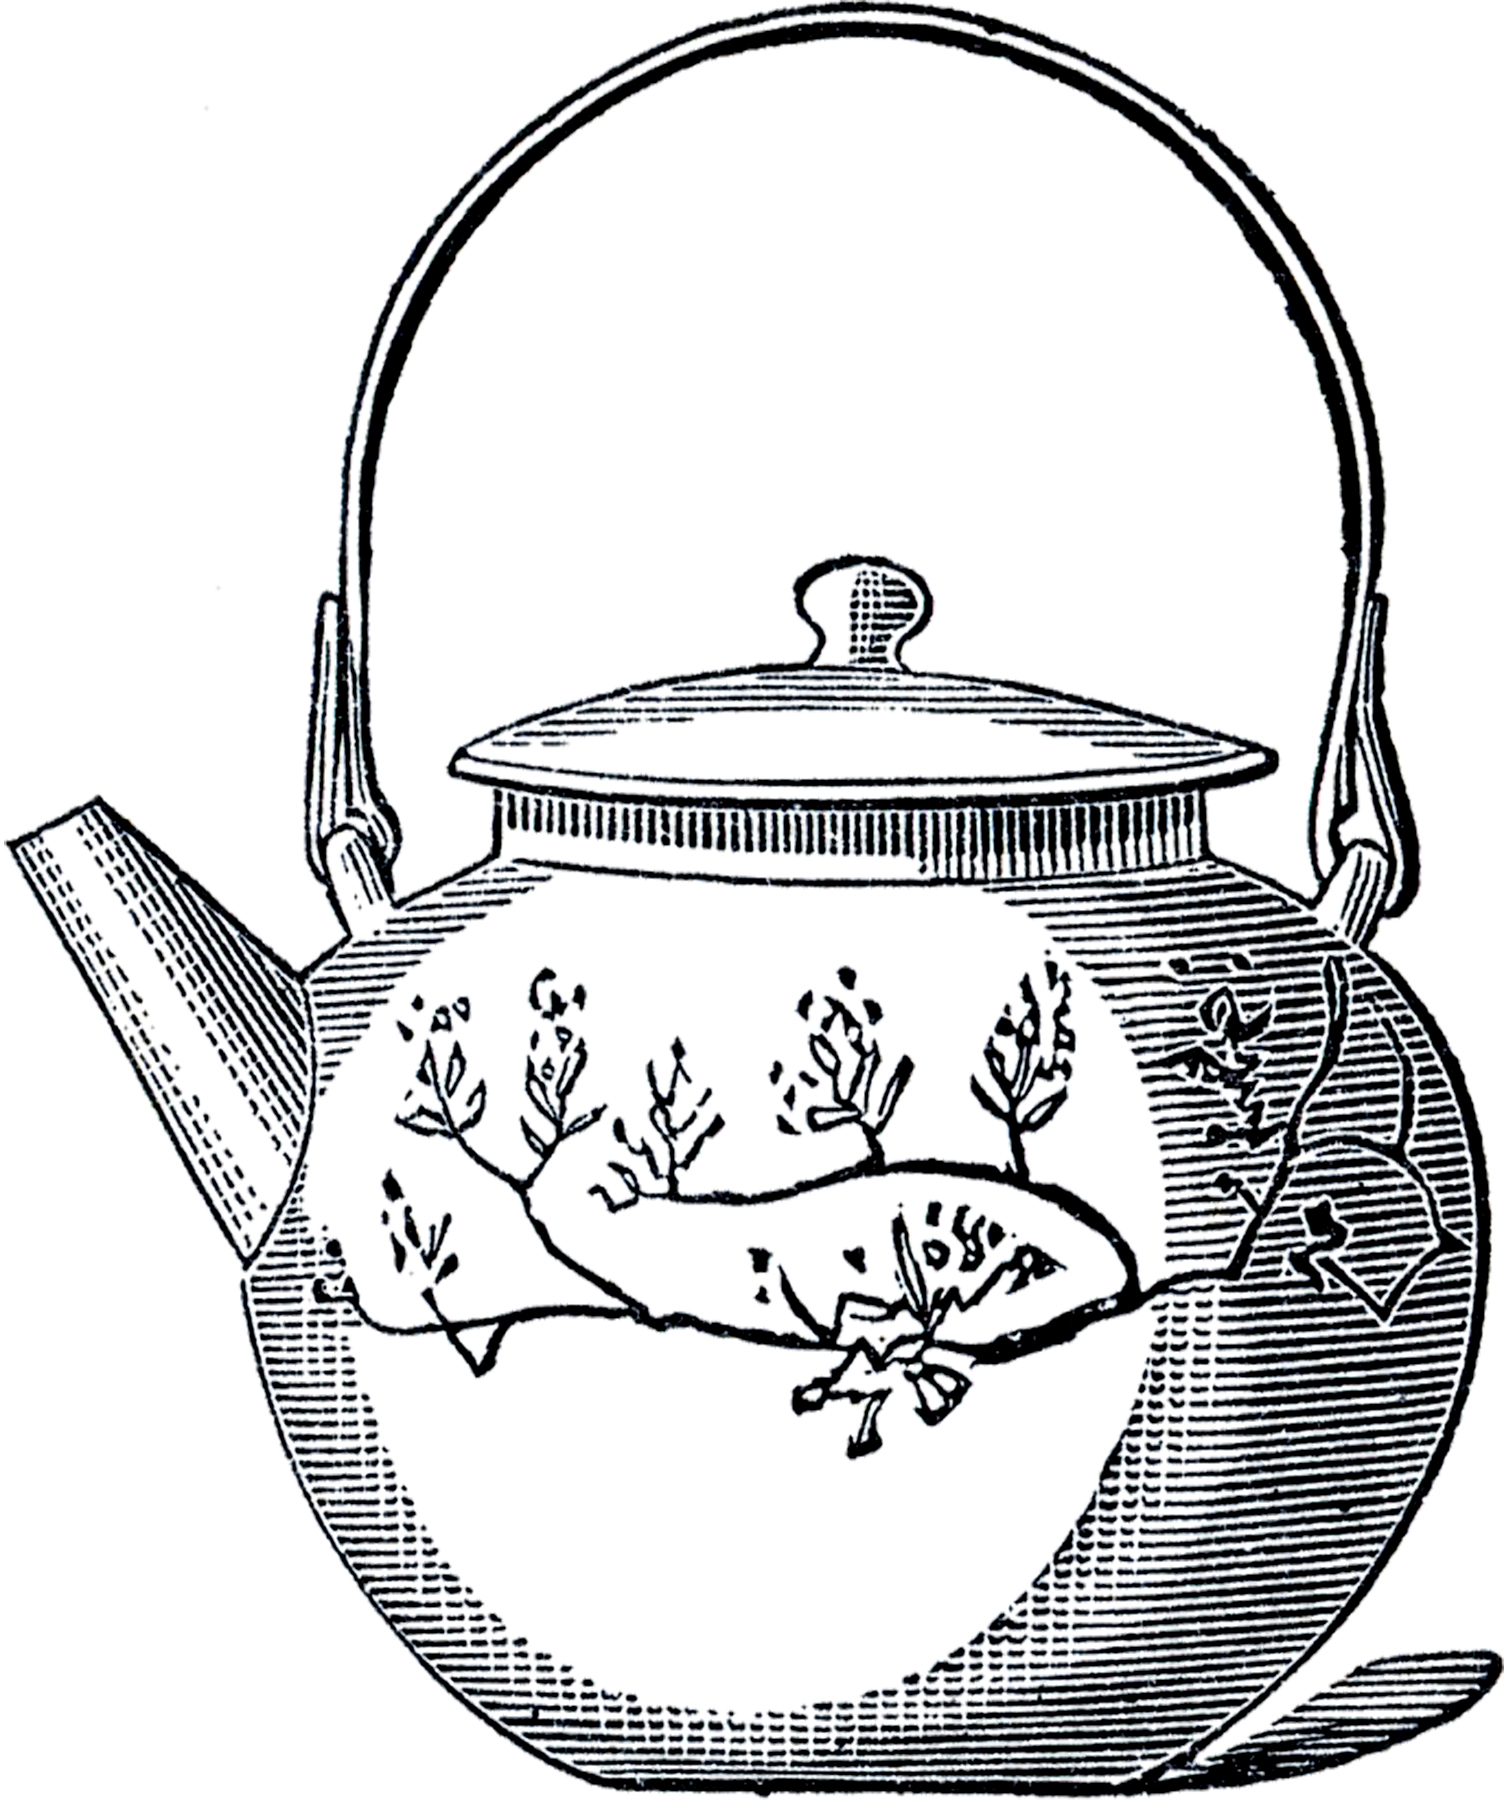 Vintage Asian Teapot Image - The Graphics Fairy